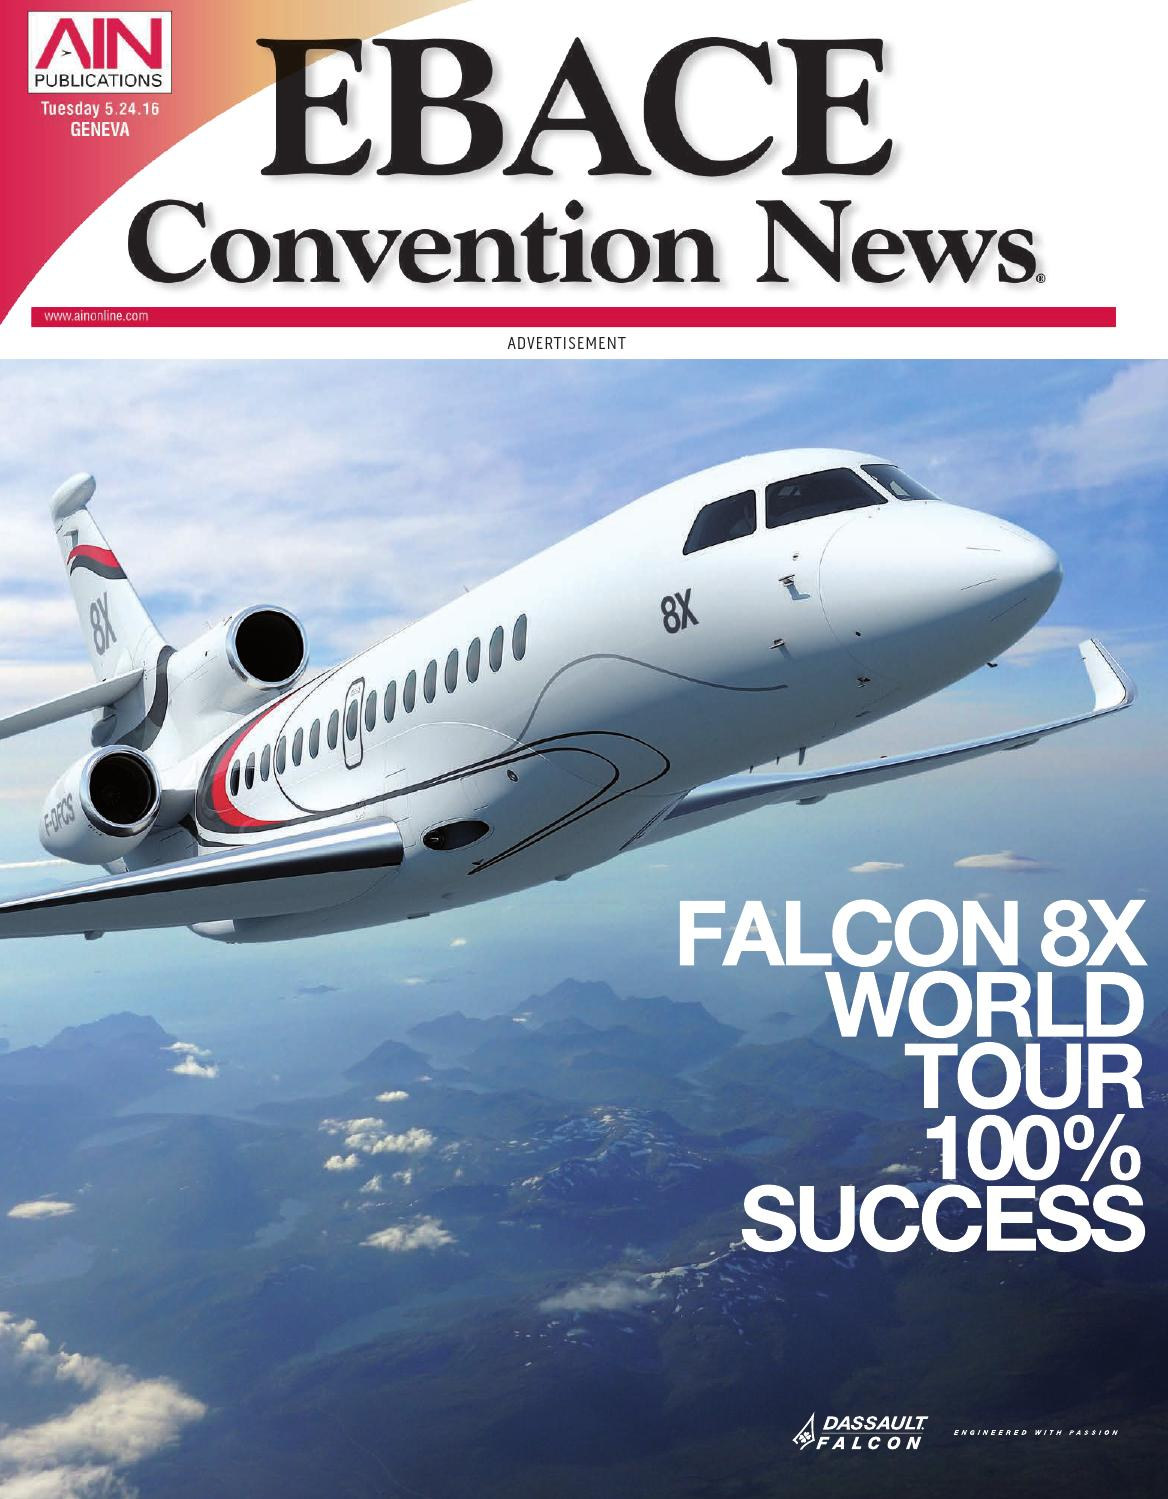 Nbaa Convention News 11 17 15 By Aviation International Issuu Pw4000 Field Wire Harness Repair